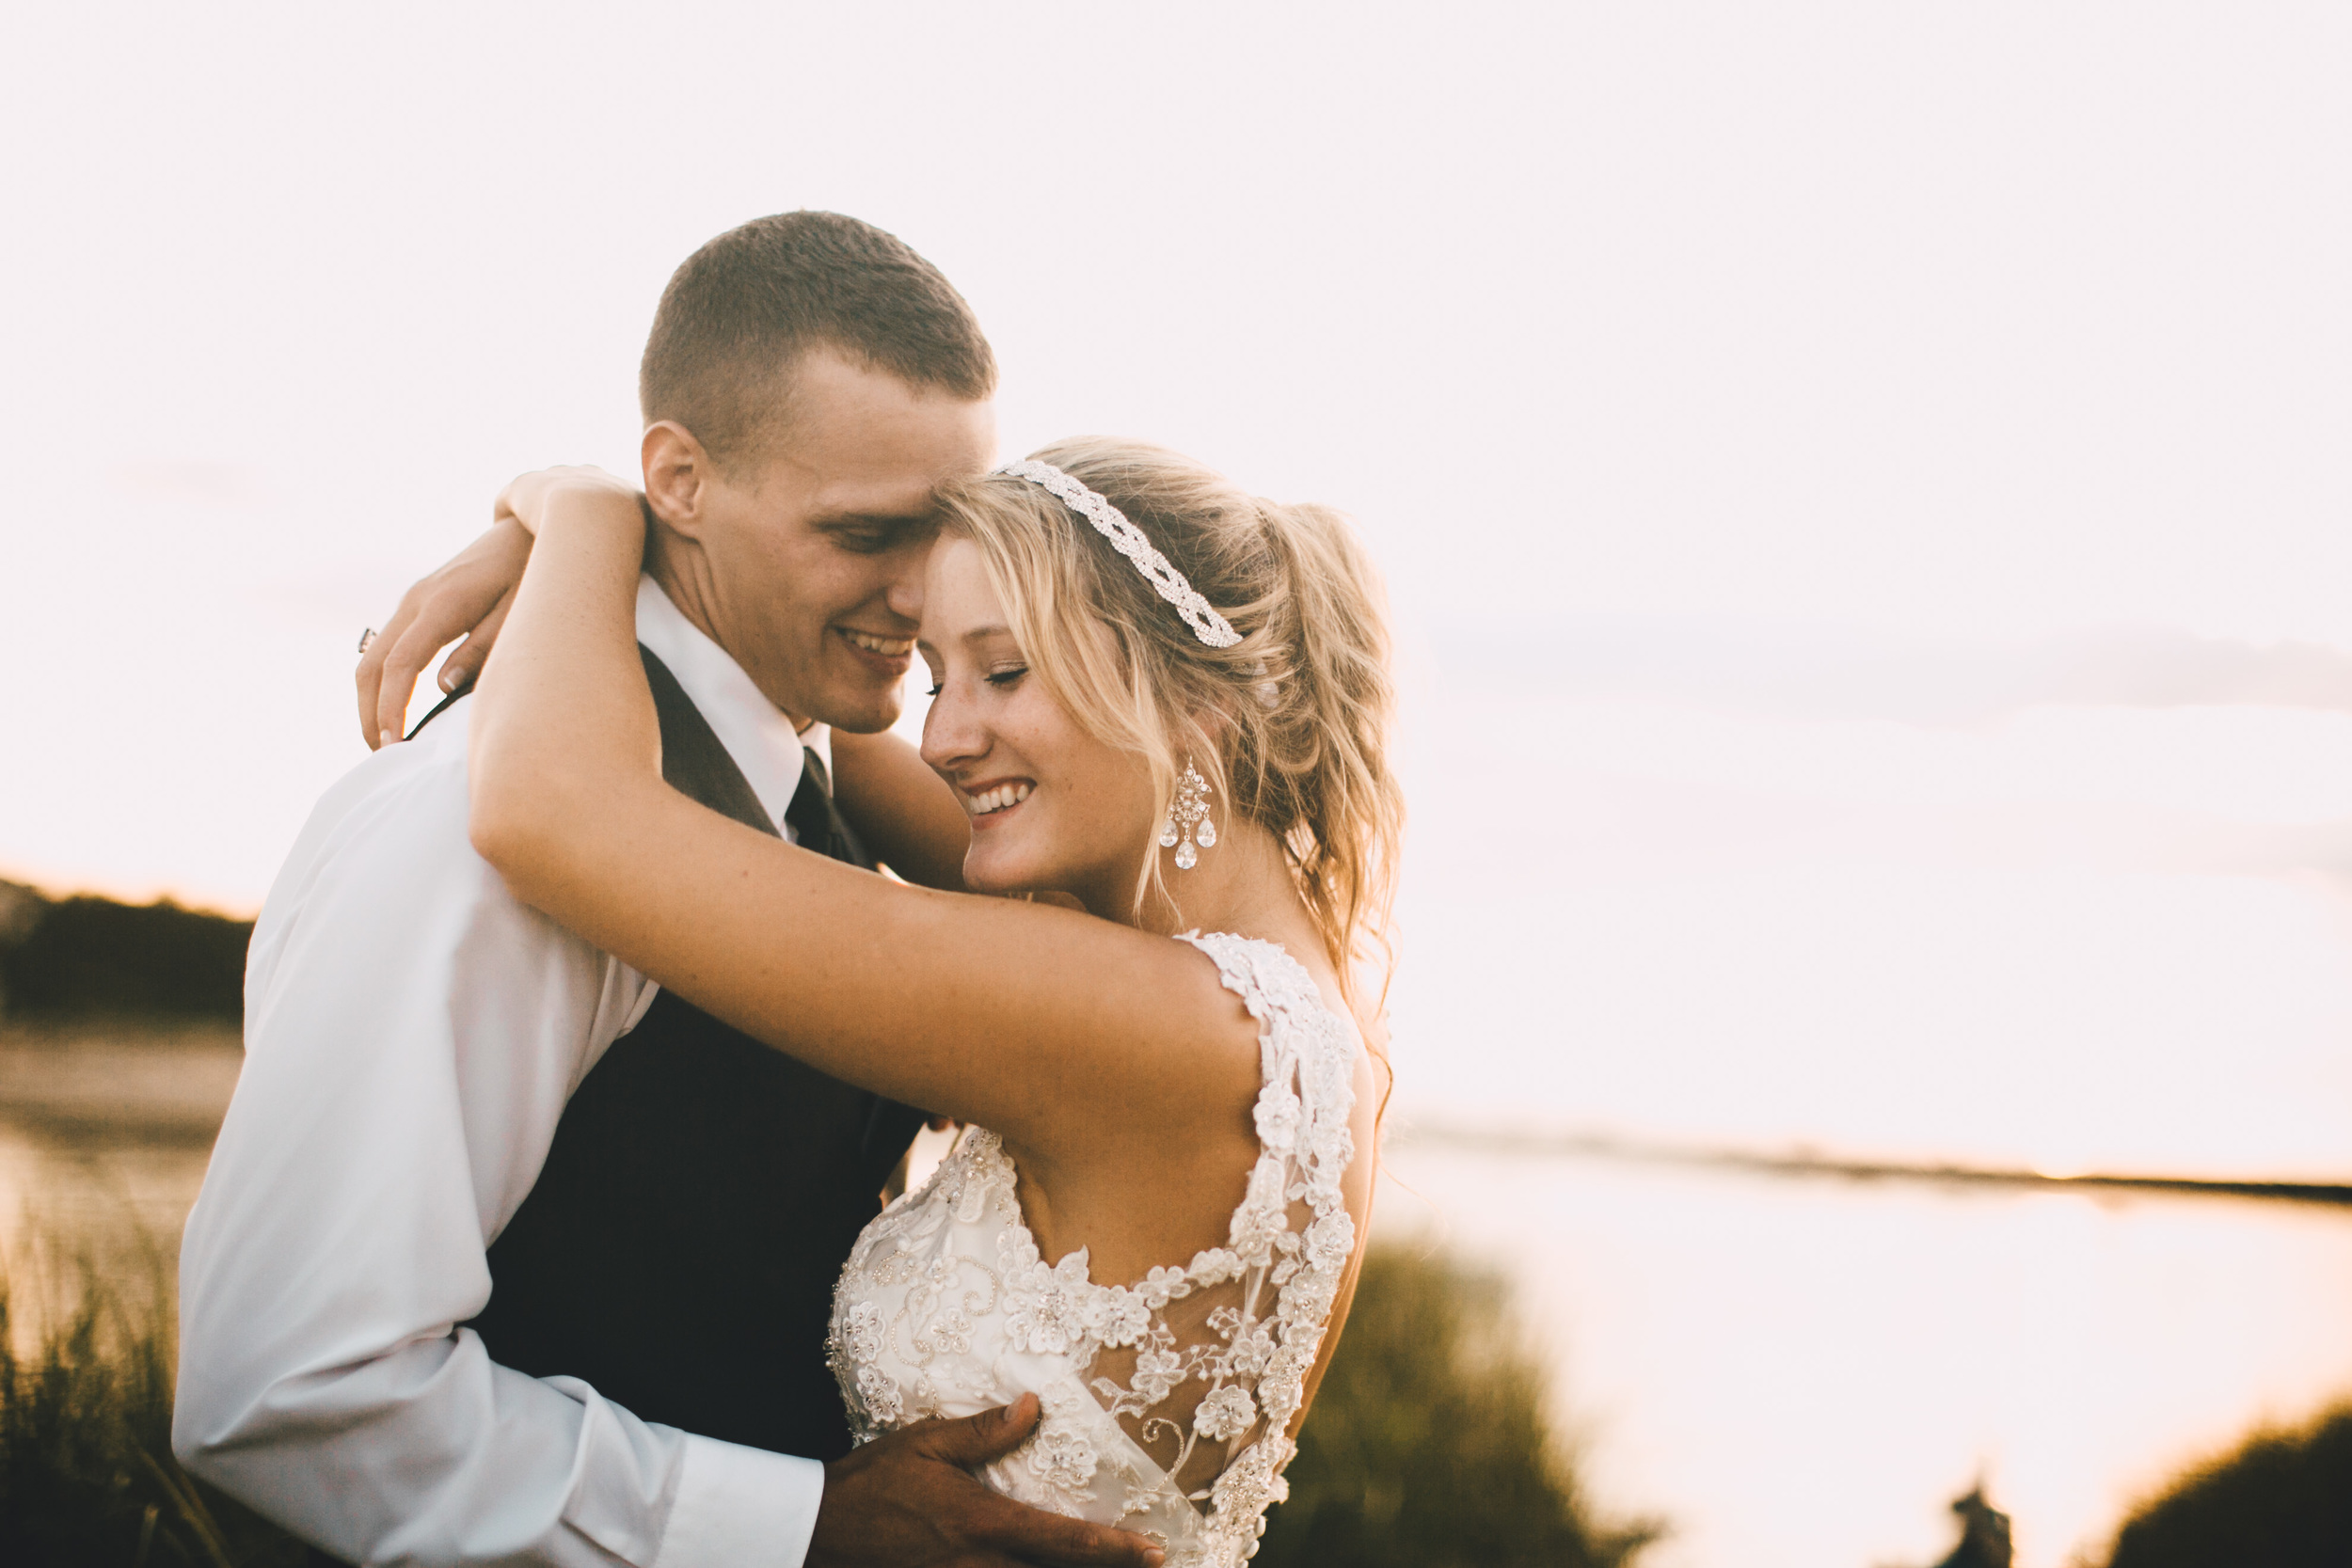 MADLY PHOTOGRAPHY GILLIAN JOE CAPE COD DENNIS BEACH WEDDING BREWSTER OCEAN ARTISTIC PHOTOGRAPHER FILM STORYTELLER LIFESTYLE NAUTICAL RUSTIC SUNSET BREWSTER ORLEANS WELLFLEET BOSTON BEACHES BAY VACATION FAMILY 10.jpg